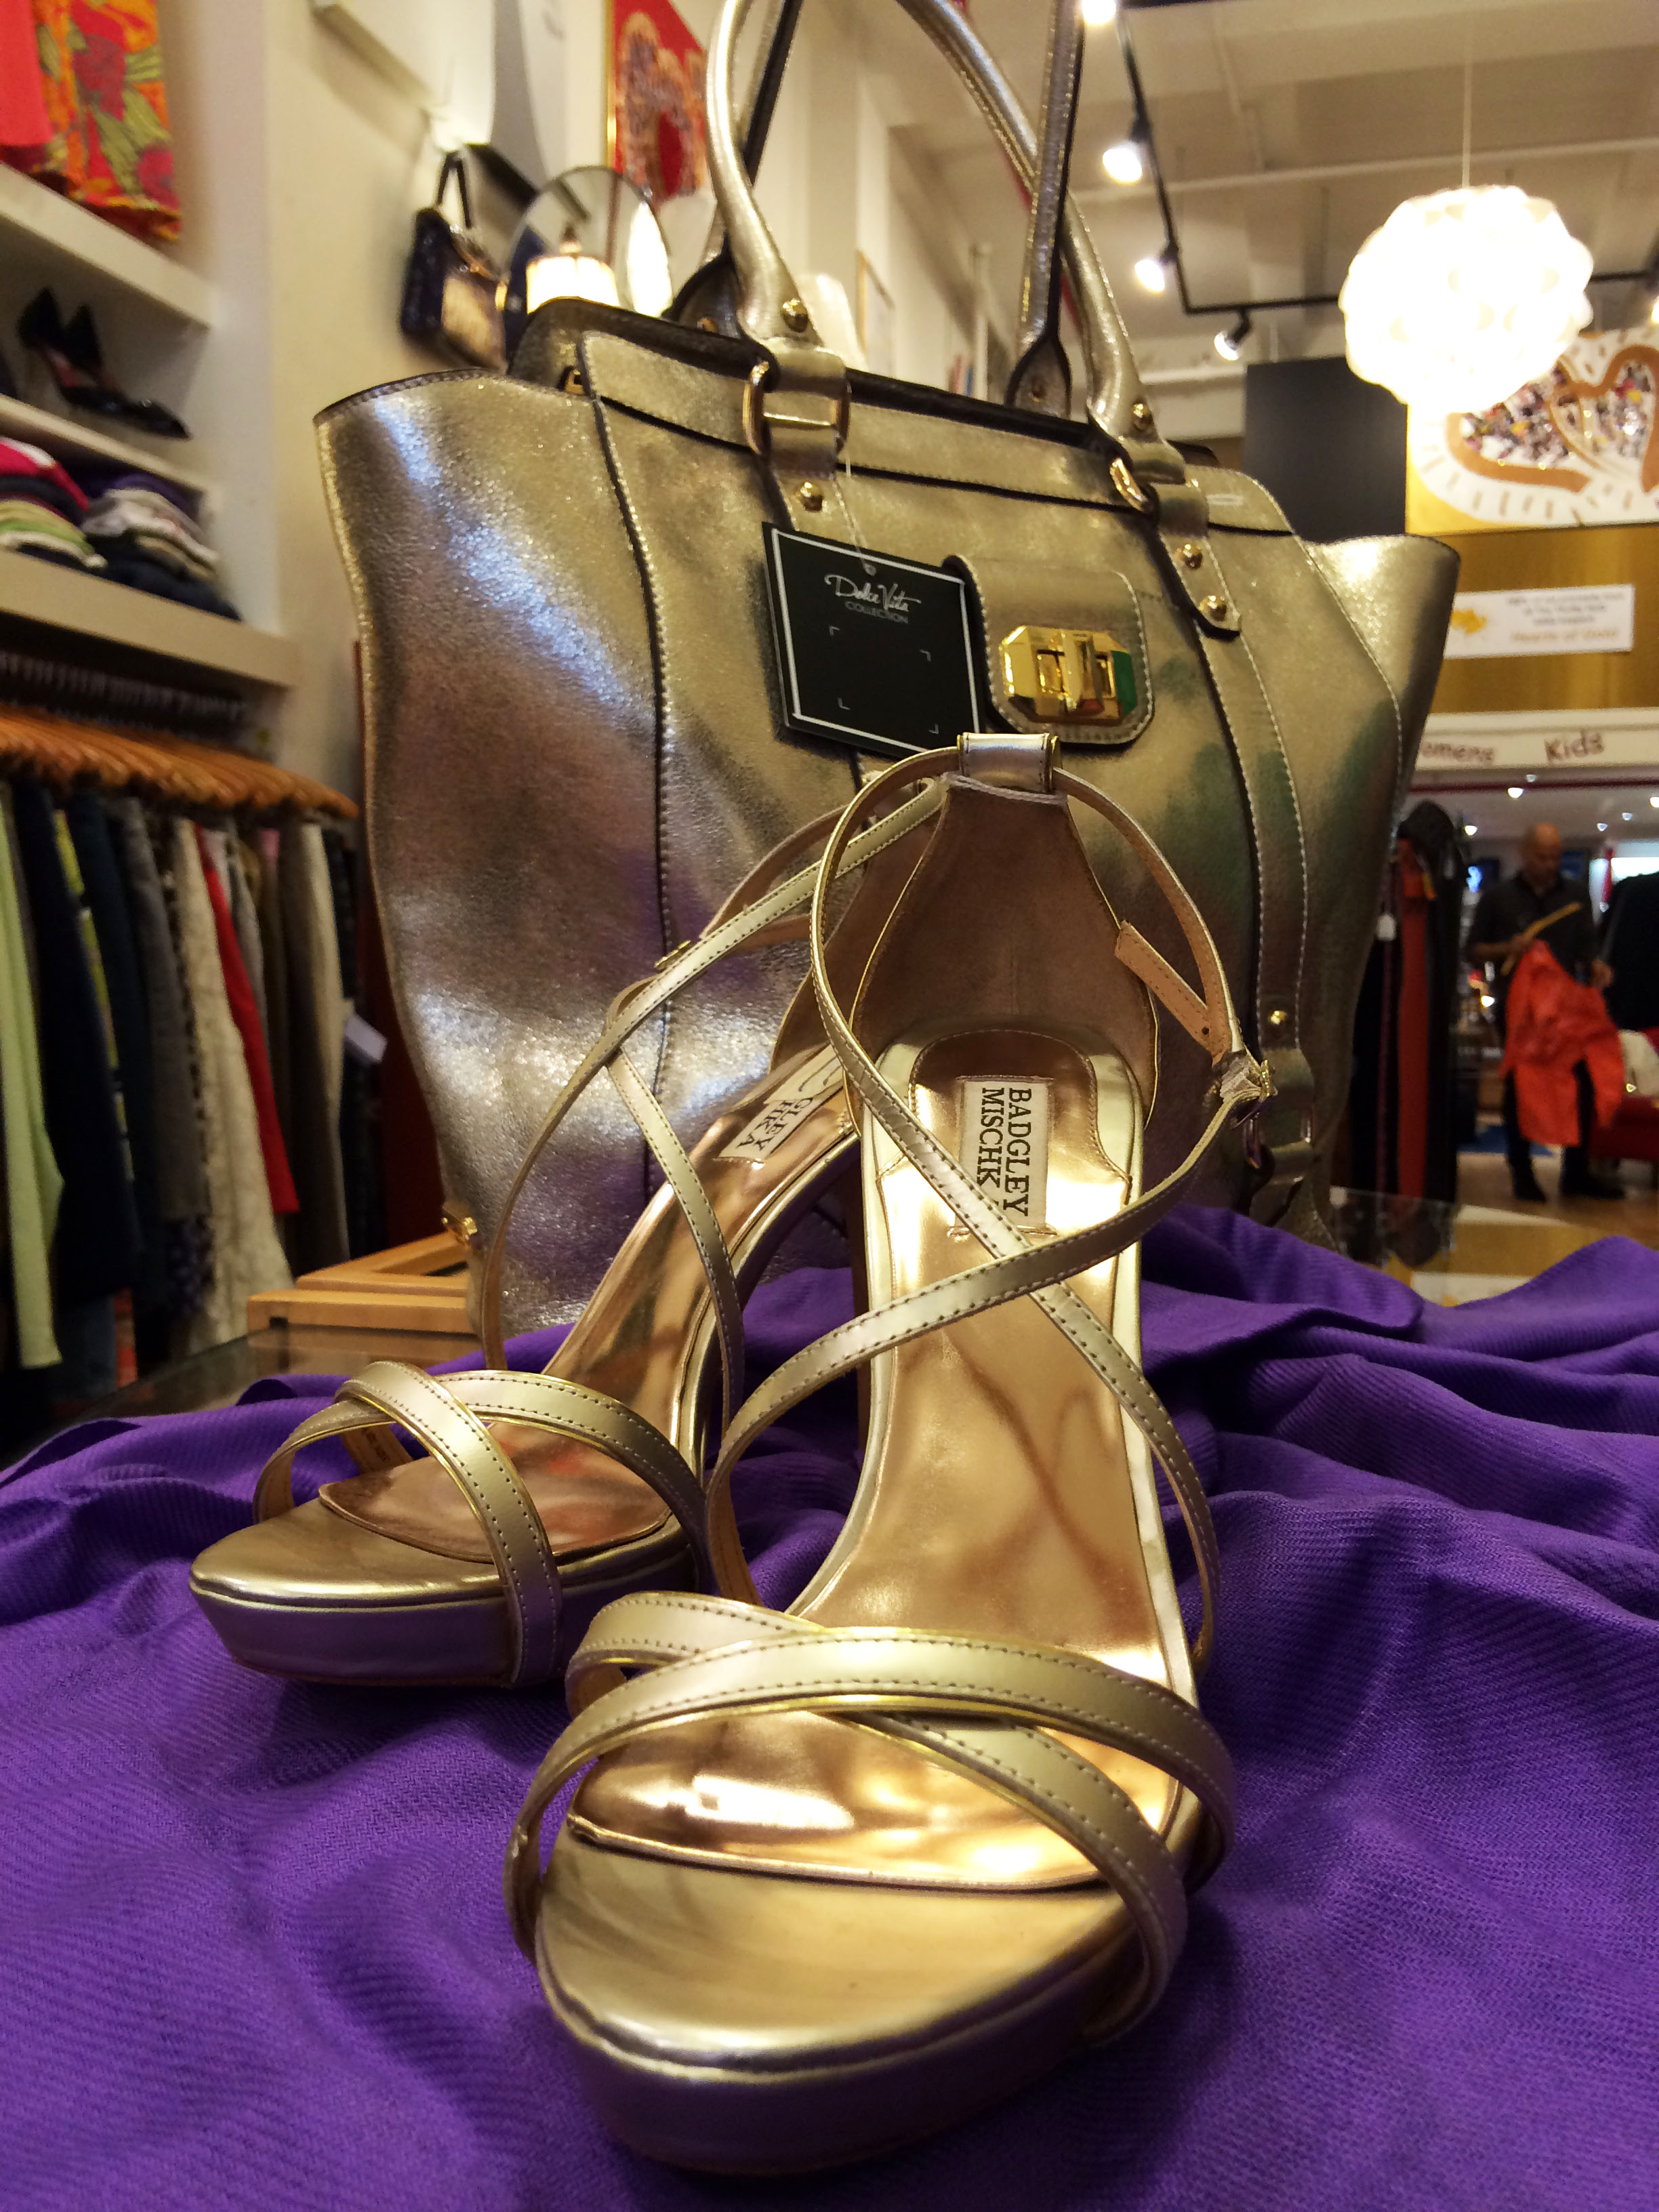 gold badgley mischka shoes available at the thrifty hog